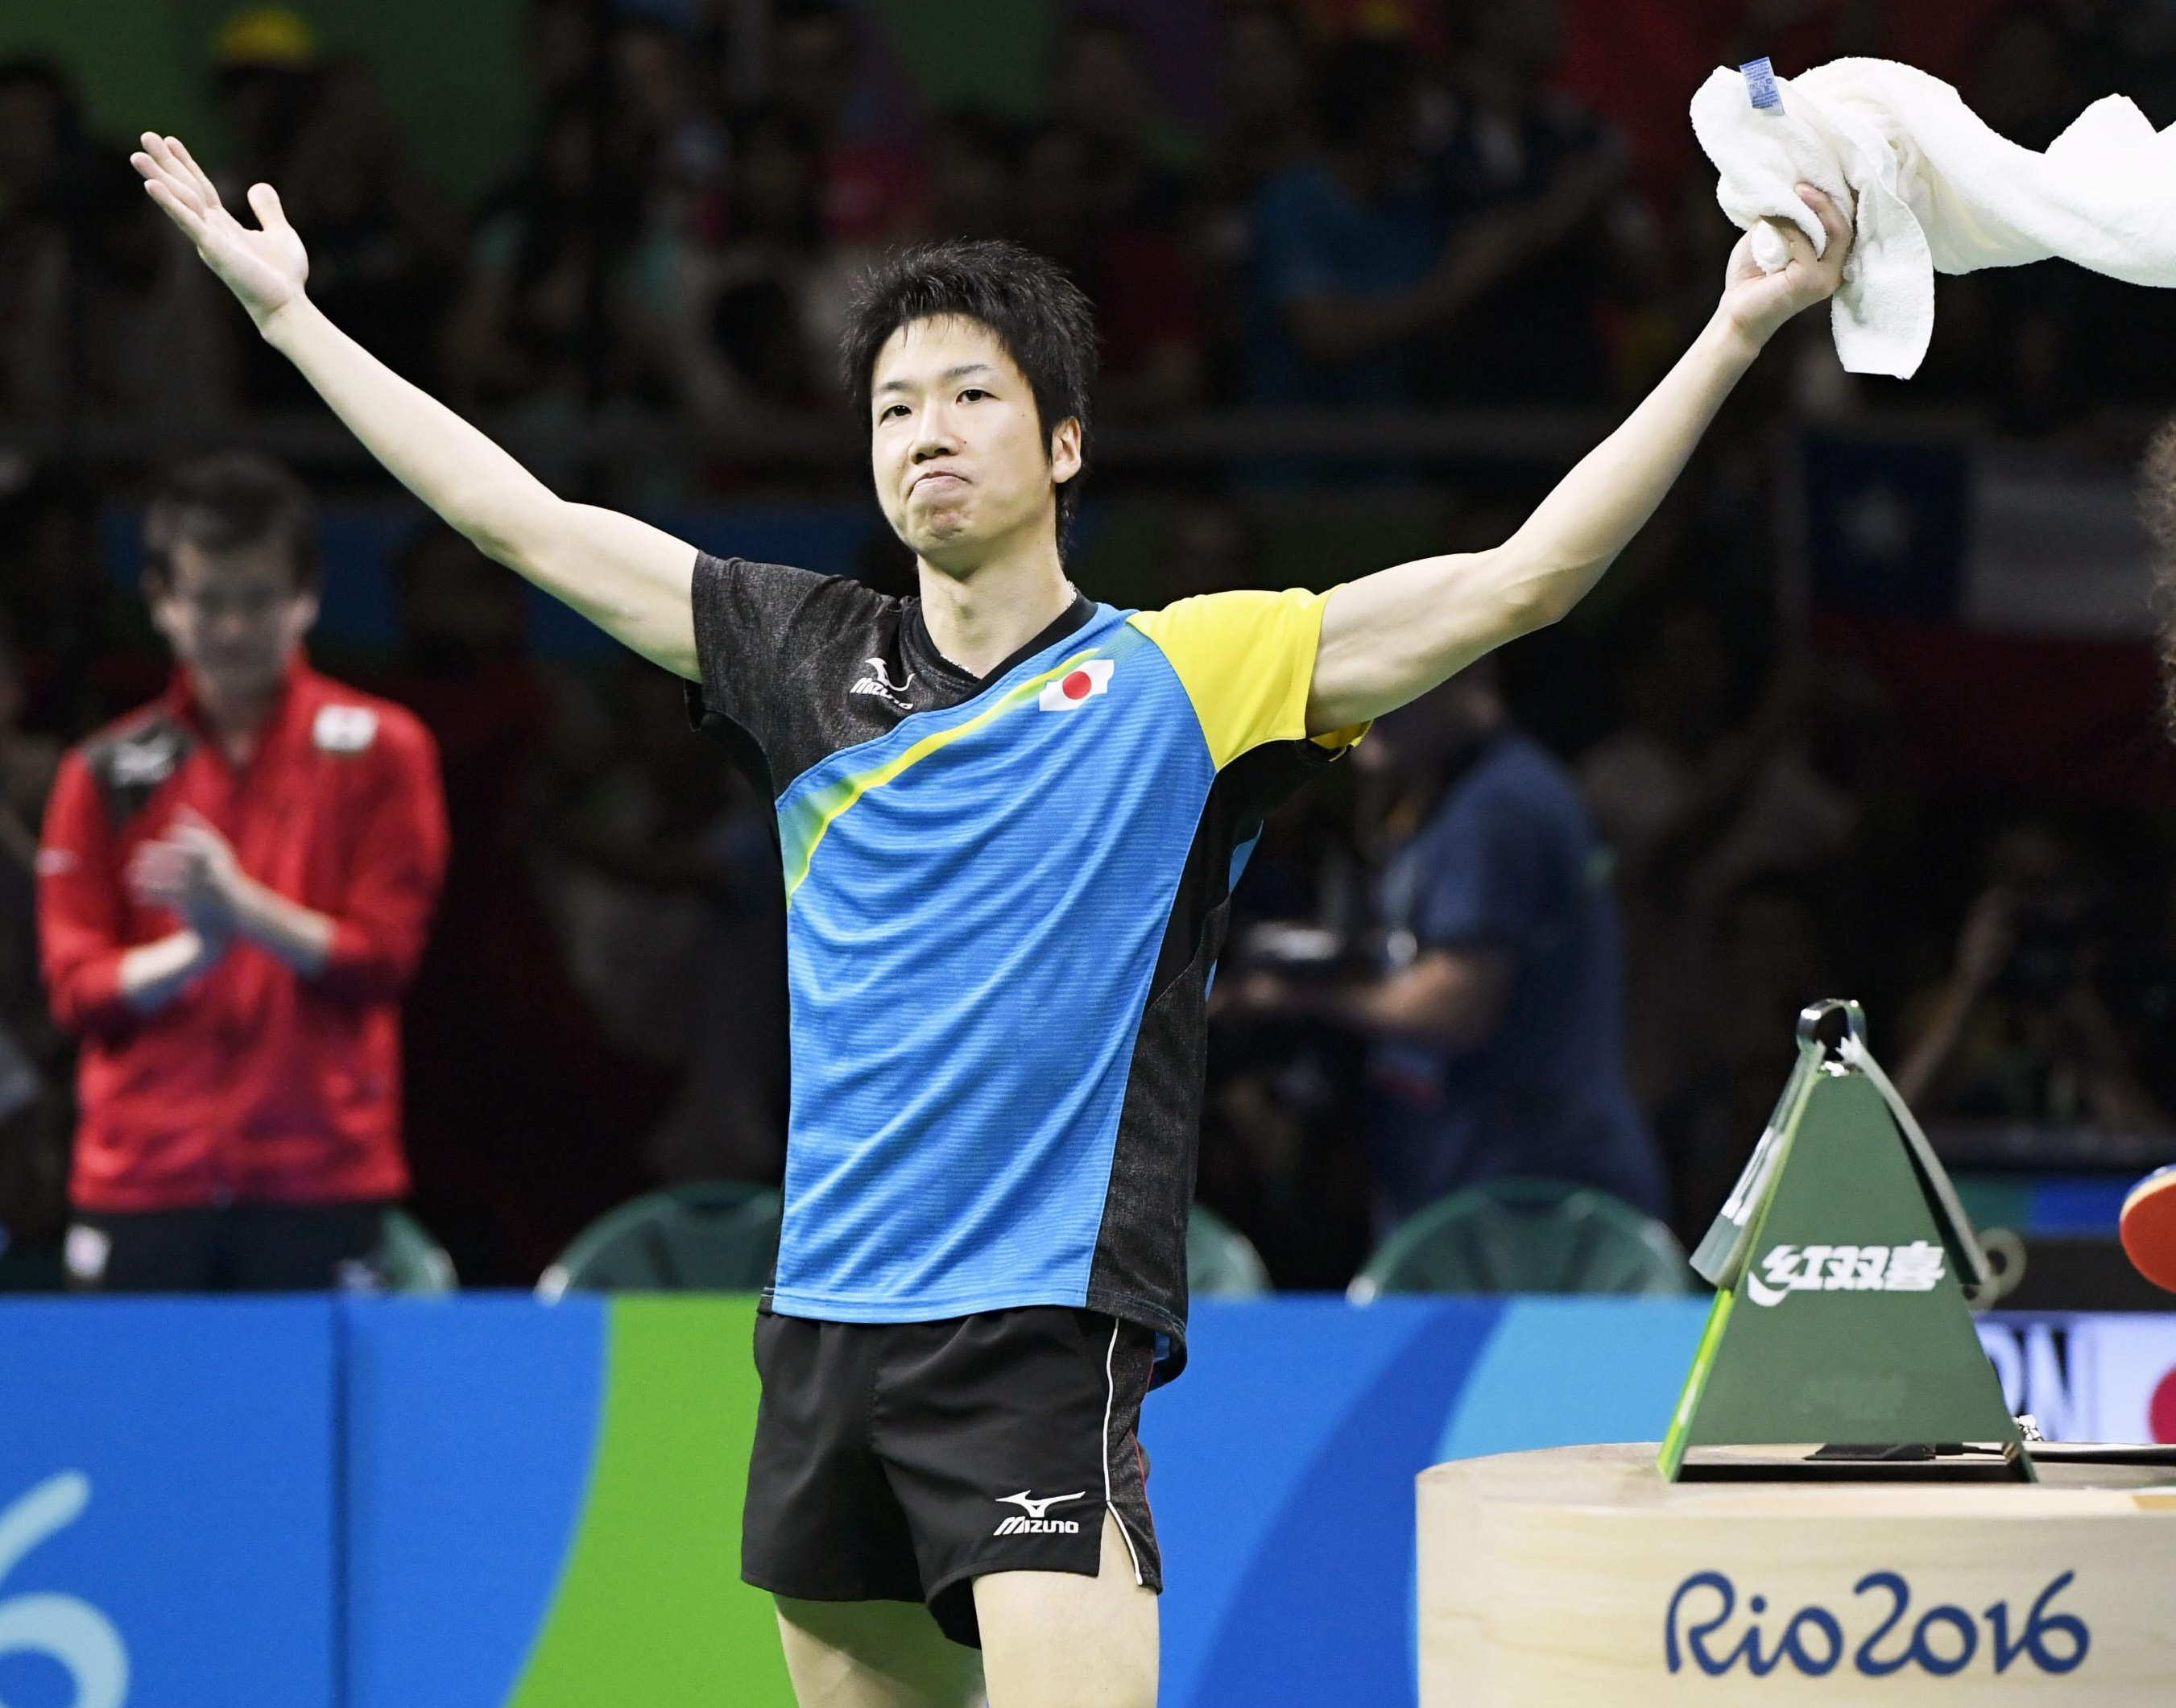 Jun Mizutani celebrates beating China's Xu Xin in the singles match during their men's table tennis gold medal match at the Rio de Janeiro 2016 Olympic Games on Wednesday. | KYODO